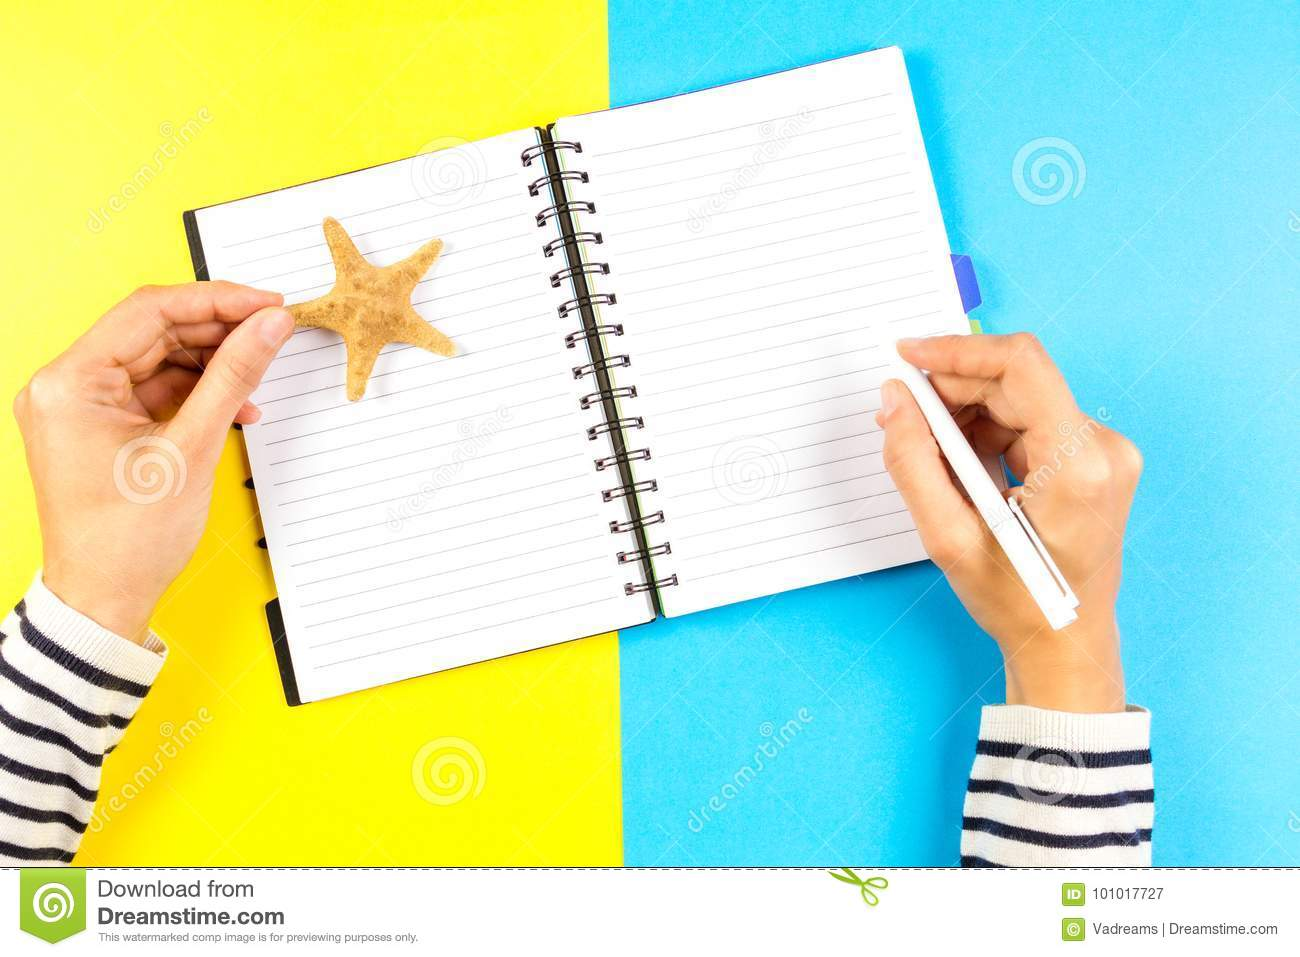 Vacation planning concept. Woman hand writing in open travel notebook over blue and yellow background.